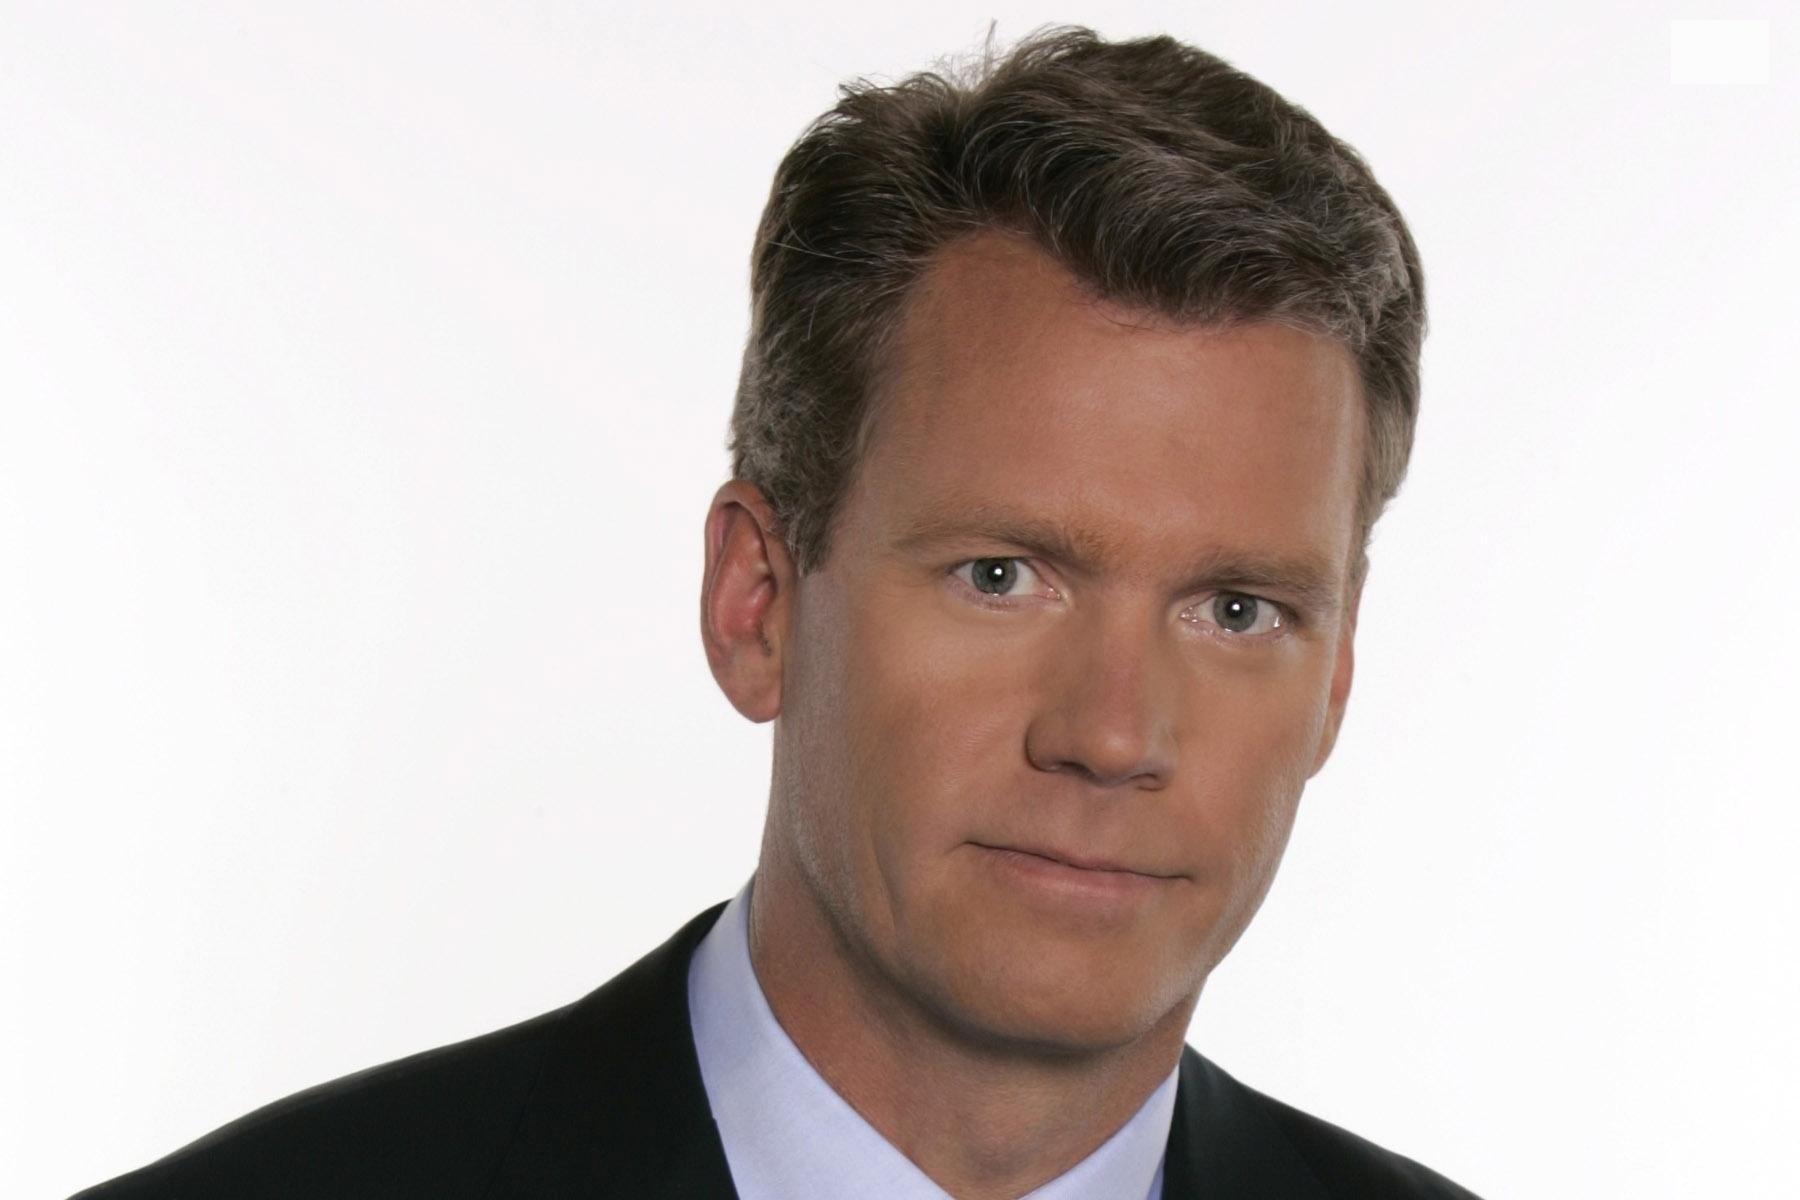 Have a Seat: Chris Hansen's 'To Catch a Predator' Gets a Reboot.